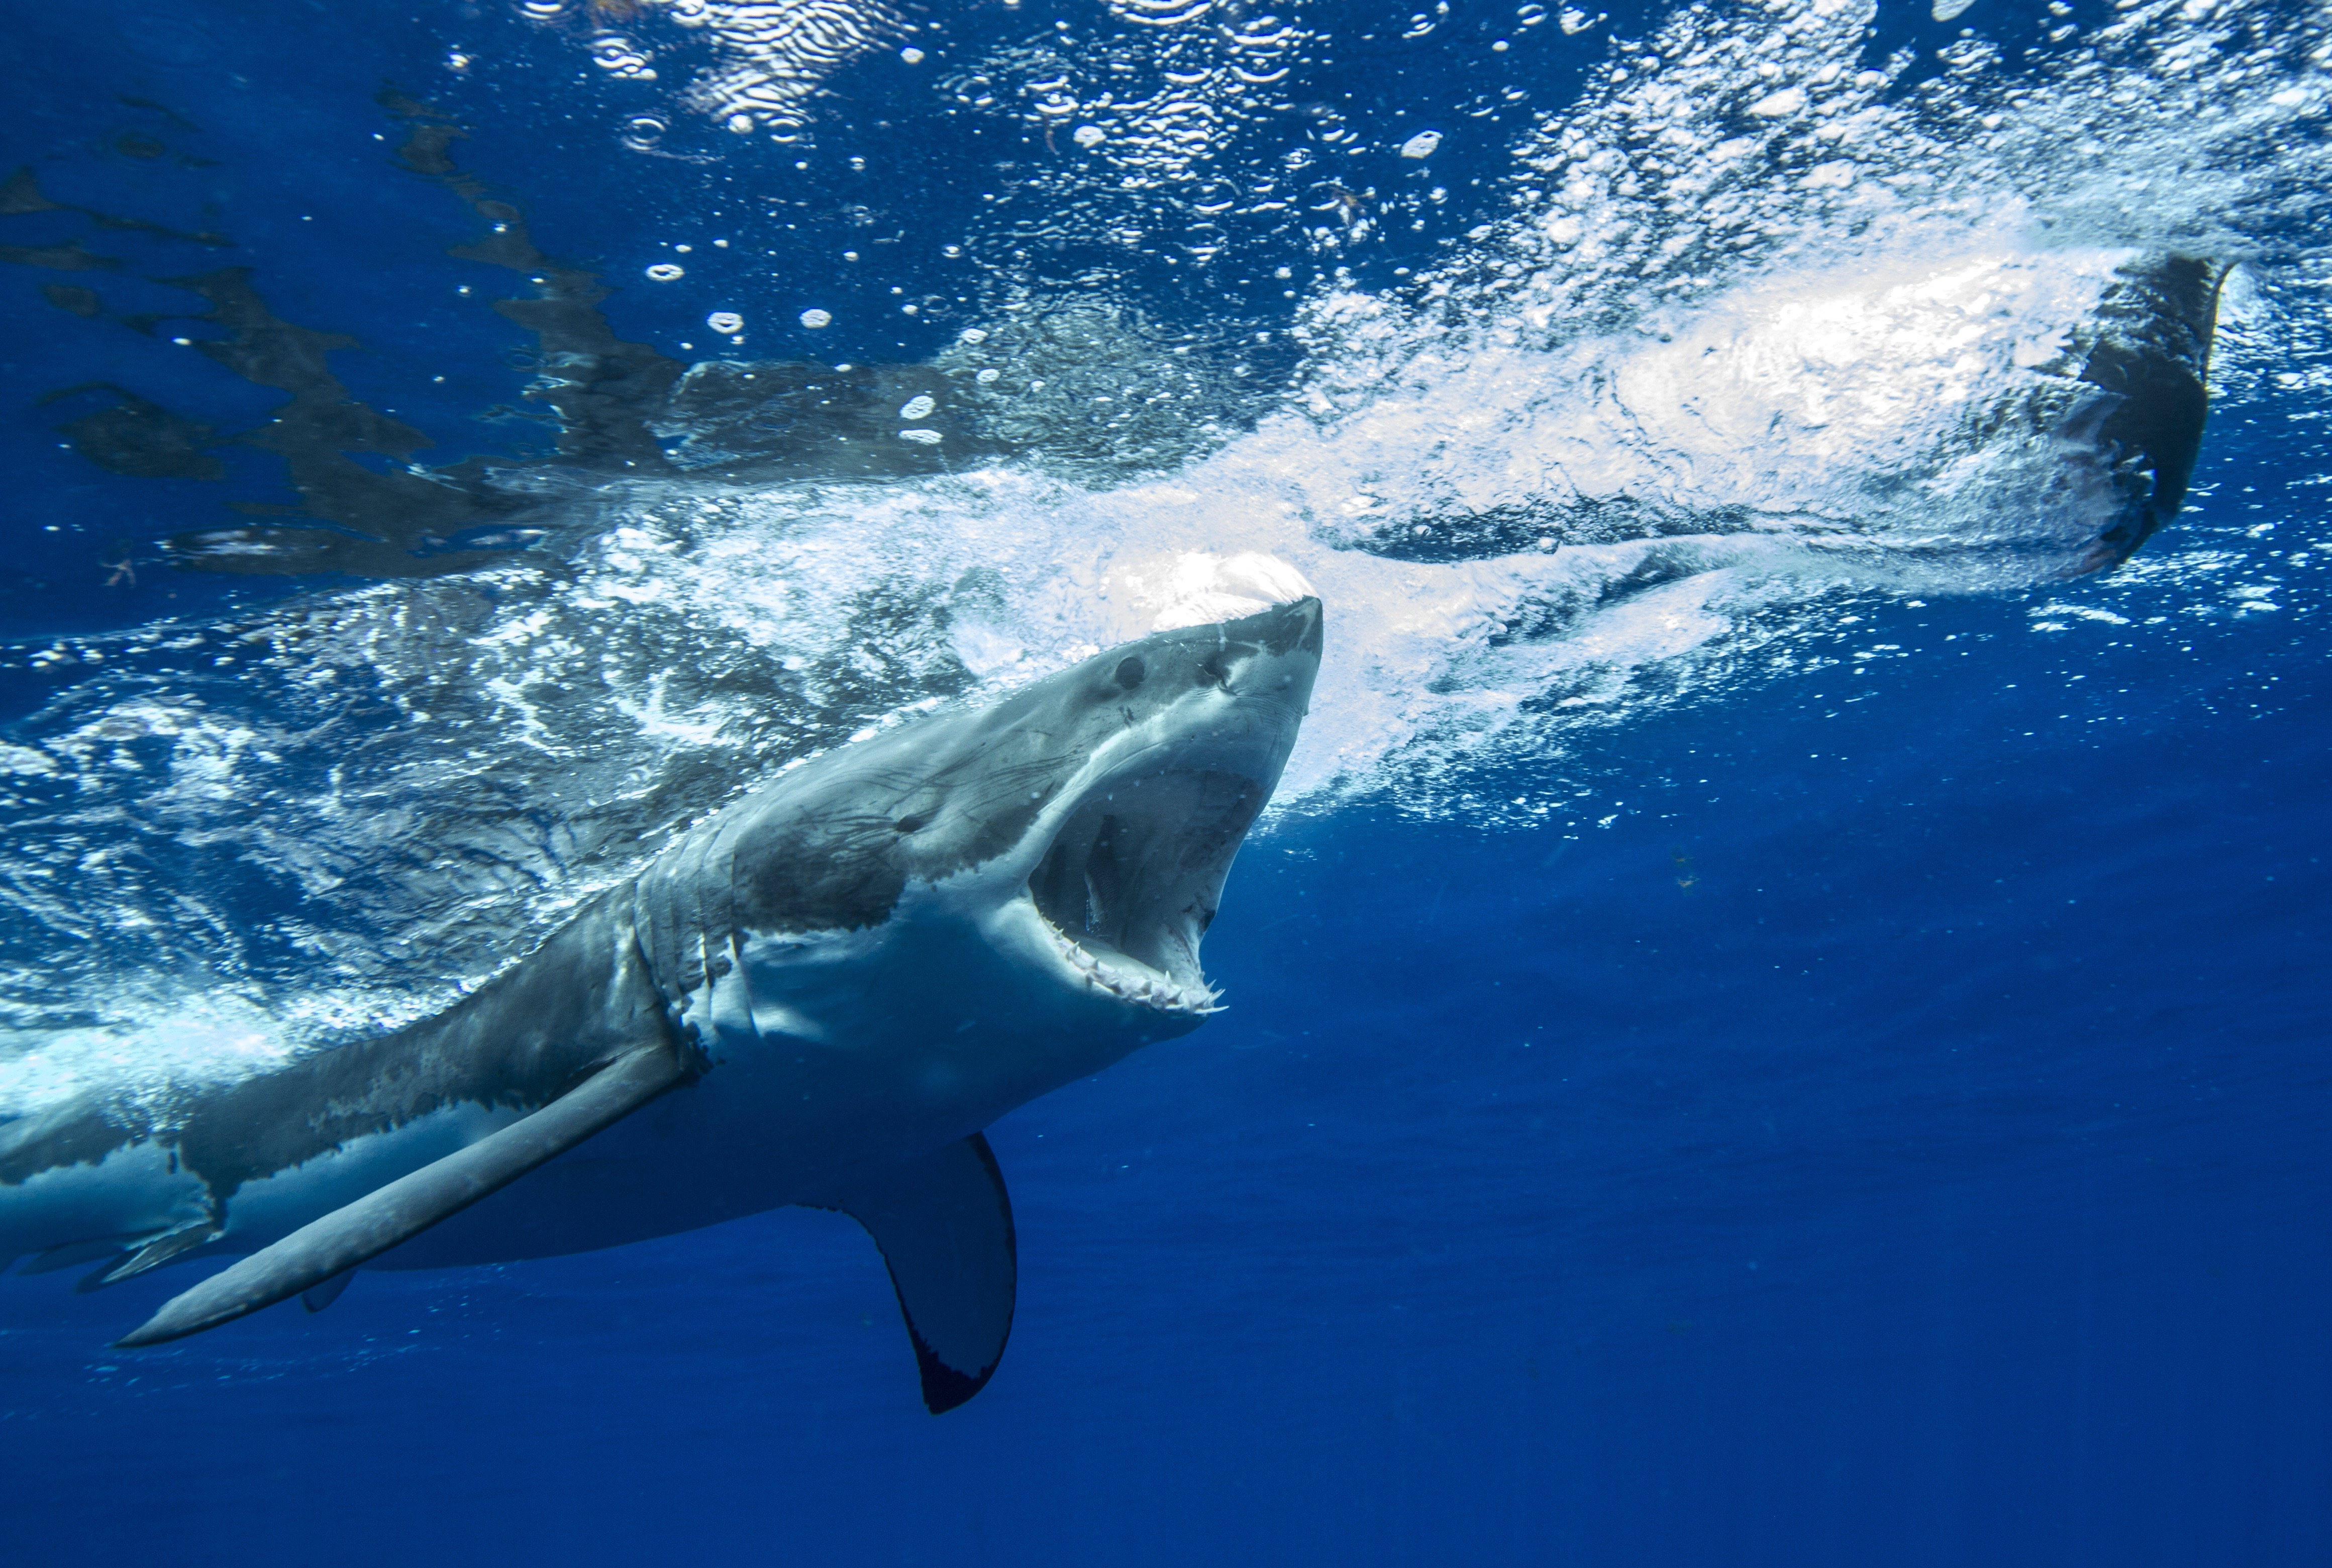 Great white shark chases decoy prey from behind